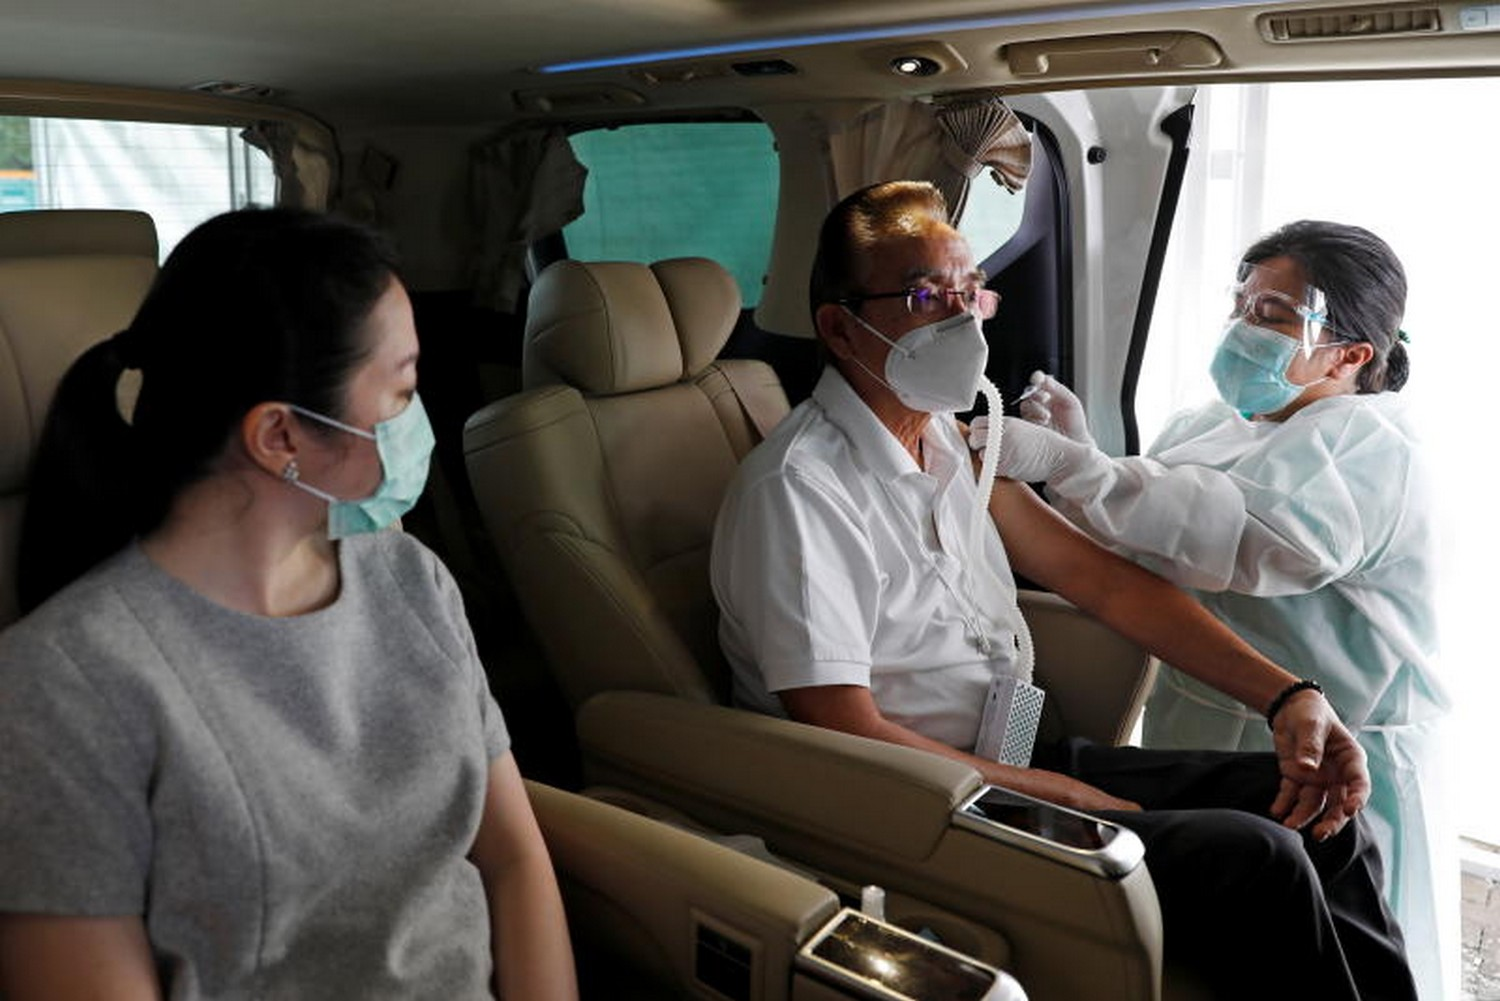 A man wearing a protective mask receives a dose of China's Sinovac Biotech vaccine for the coronavirus disease at a drive-through vaccination station on Friday, part of a mass vaccination program for elderly people, in Jakarta, Indonesia. (Photo: Reuters)